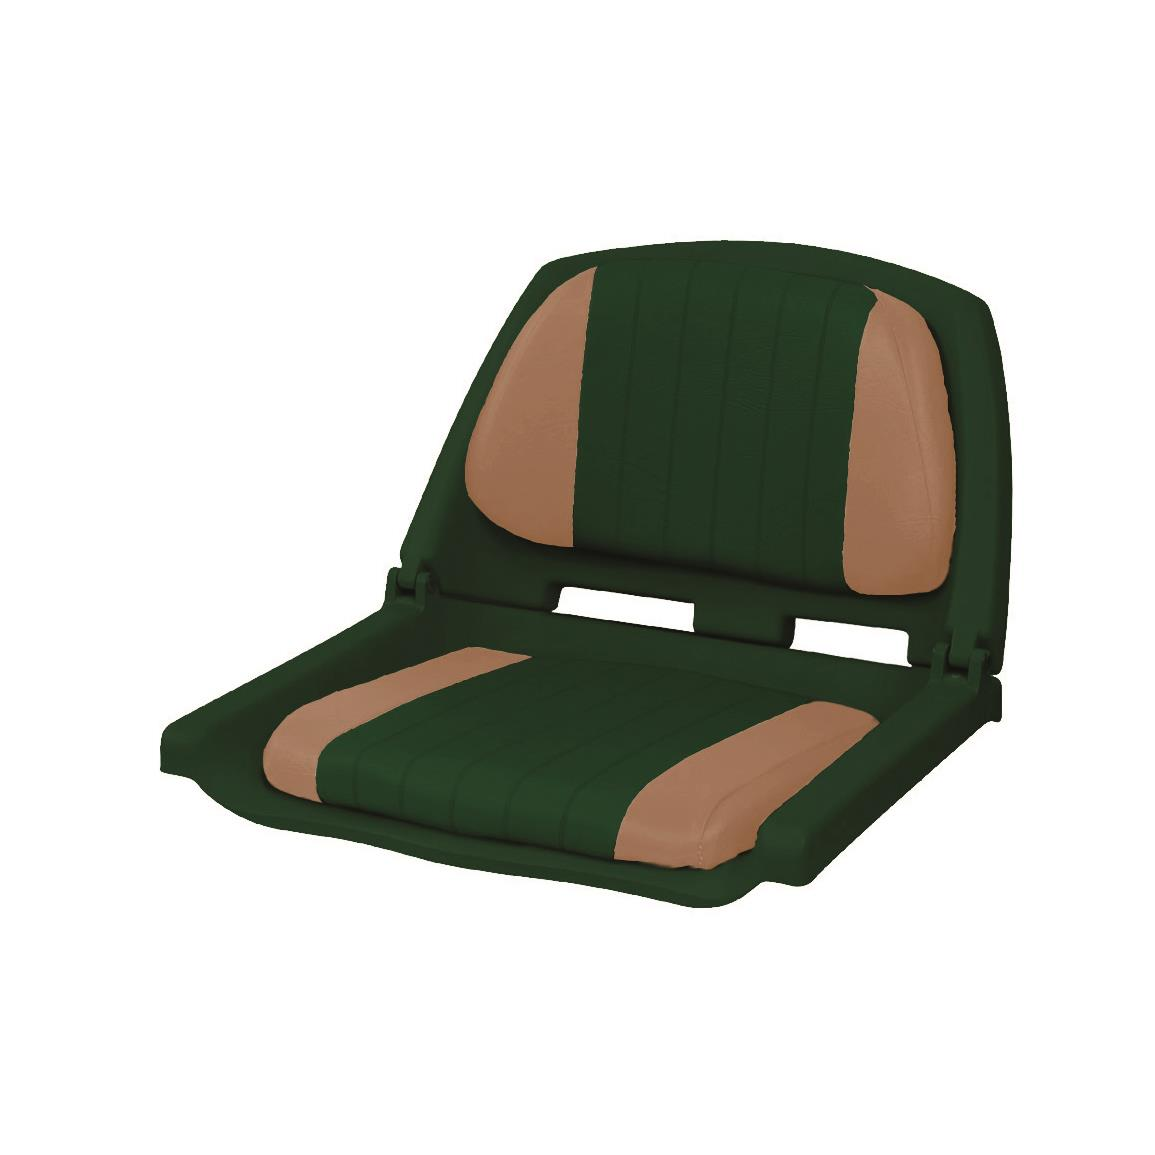 Wise Folding Plastic Fishing Boat Seat with Cushion Pads, Color J - Green and Tan